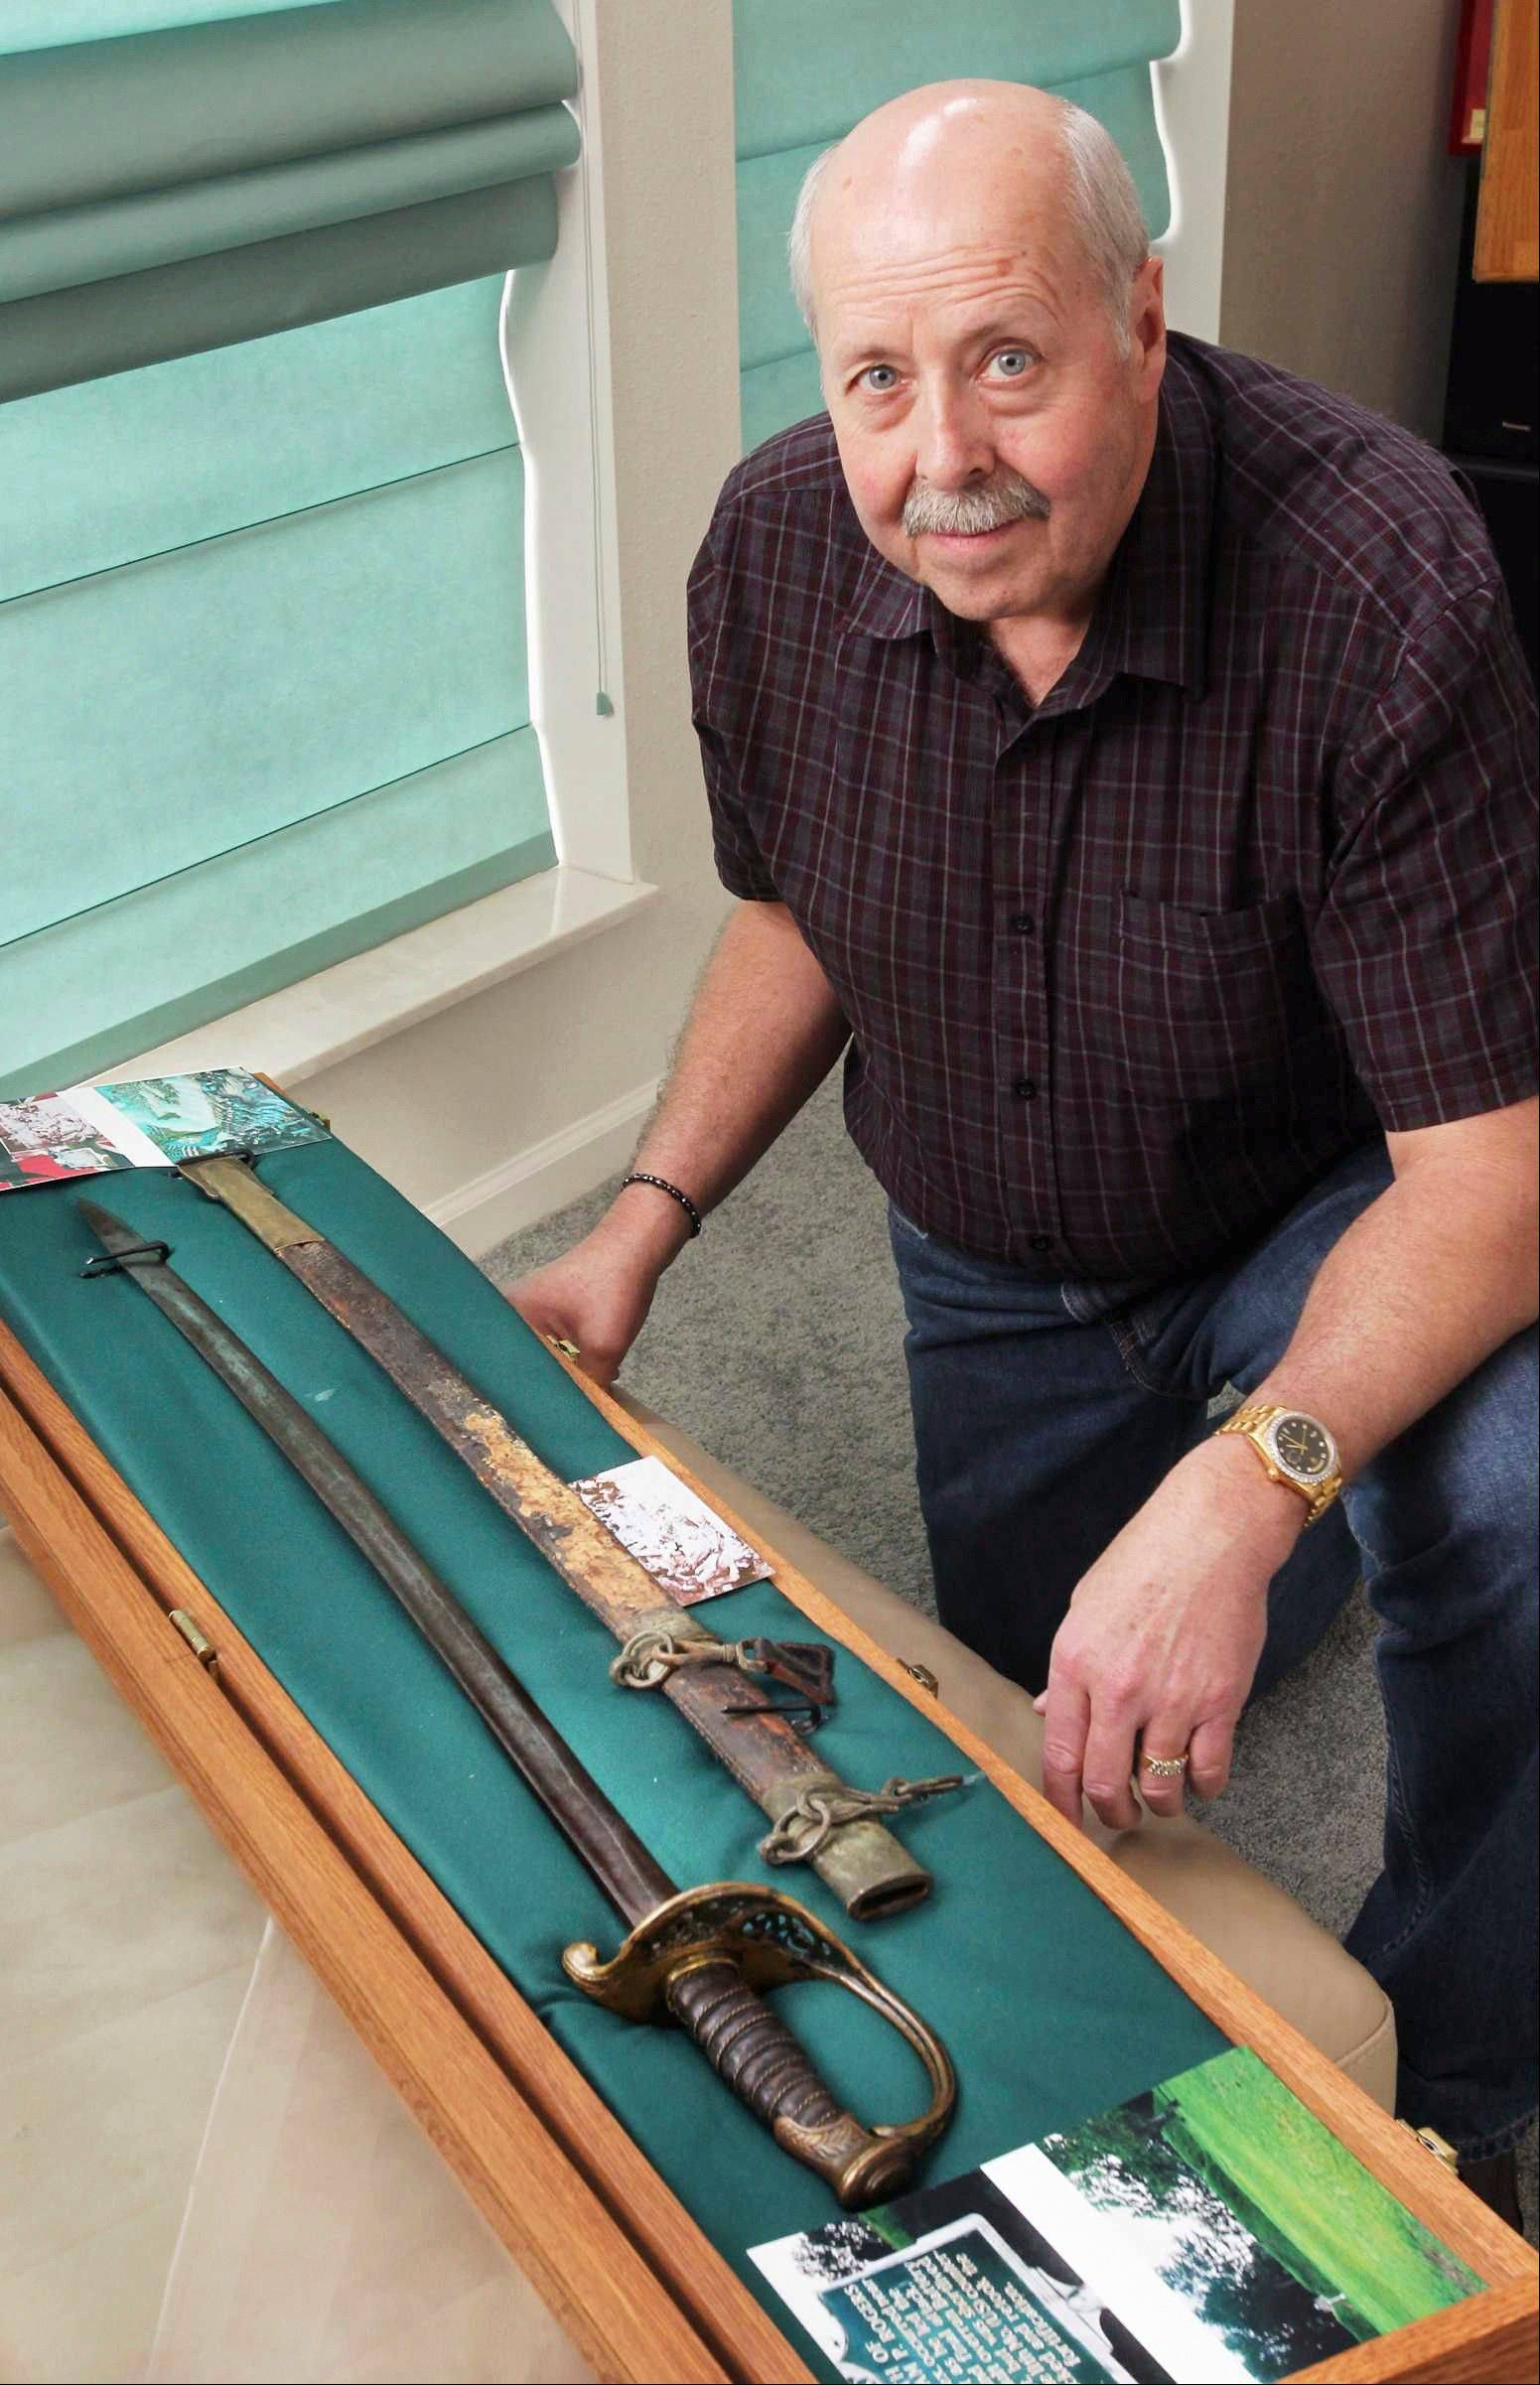 Allen Wandling, of Belleville, Ill., with Confederate Col. William P. Rogers sword from the Battle of Corinth, Miss. Wandling, a serious Civil War memorabilia collector, bought the sword from a man in Joplin, Mo., and spent four years tracing the story of the sword.